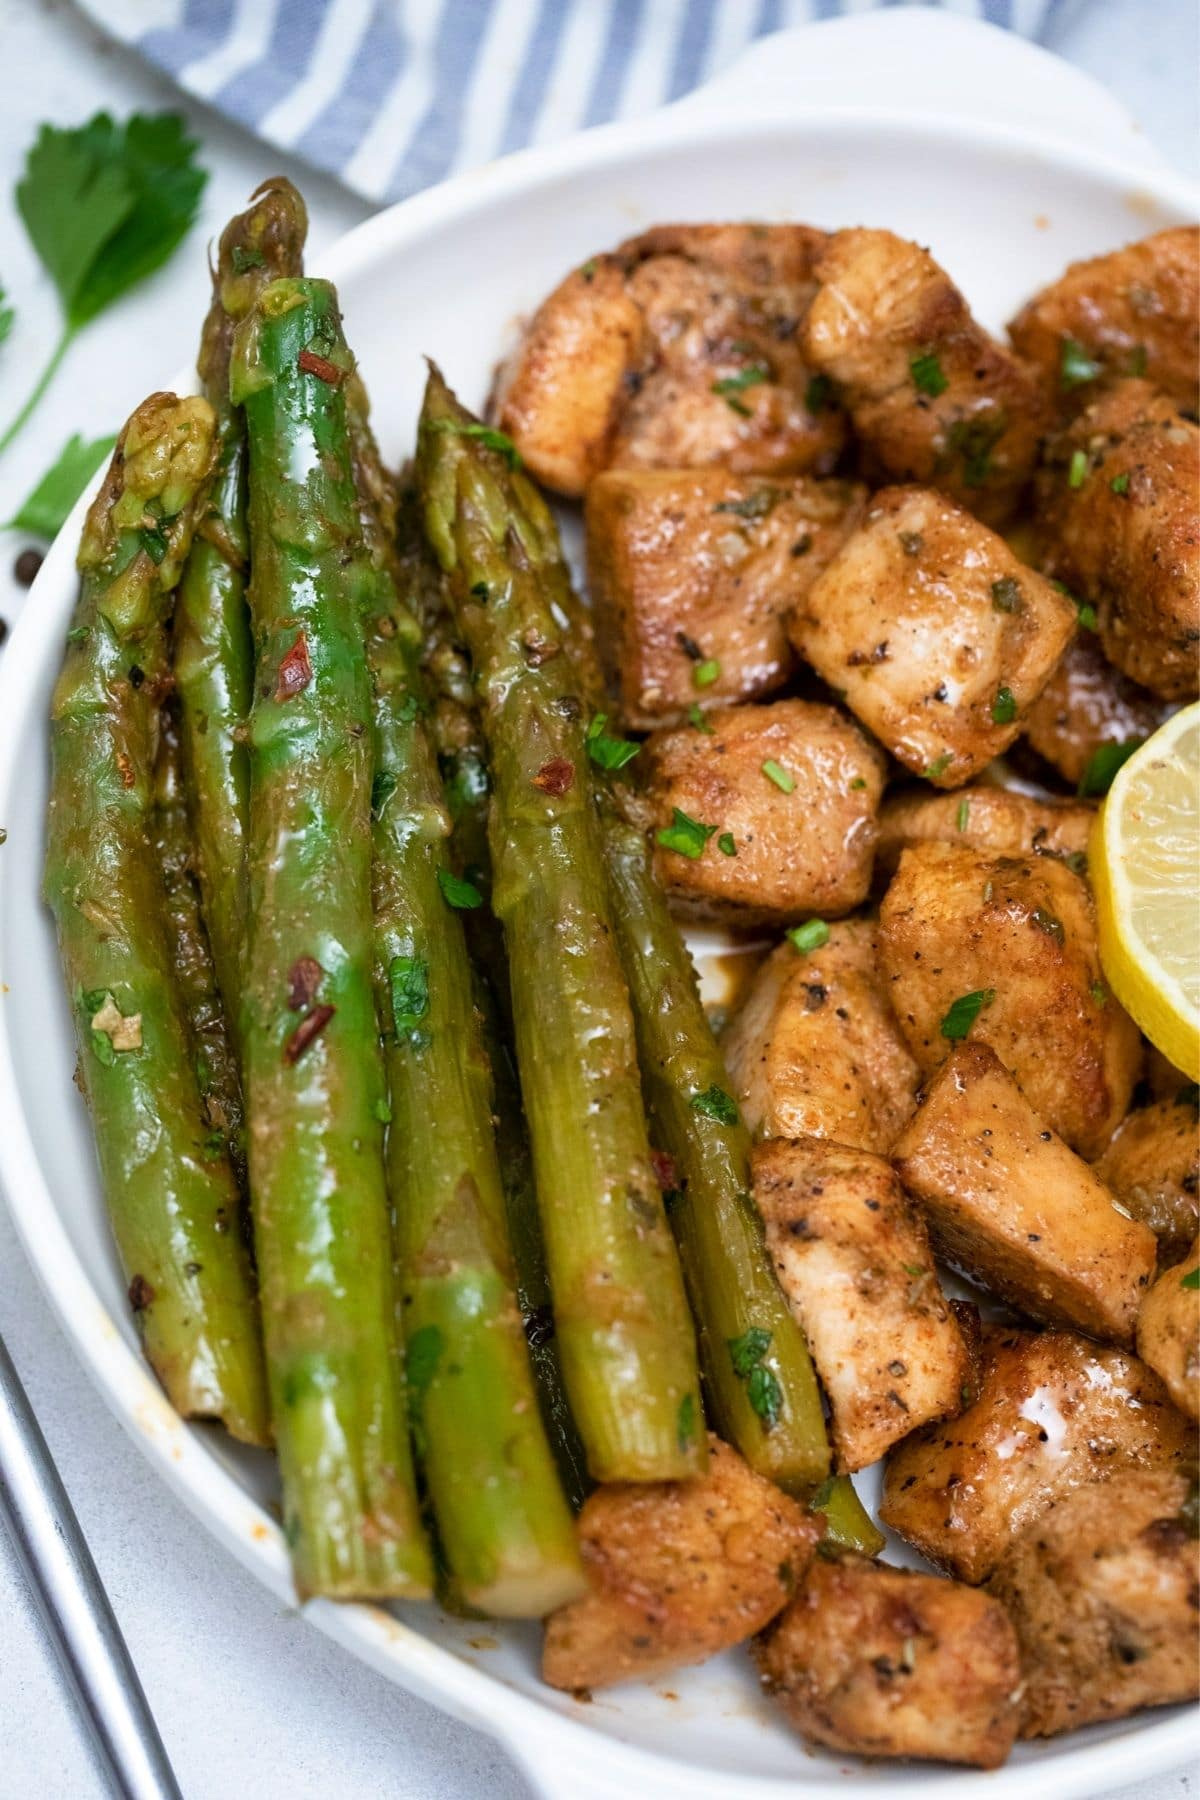 White plate with asparagus spears on left side and chicken on right